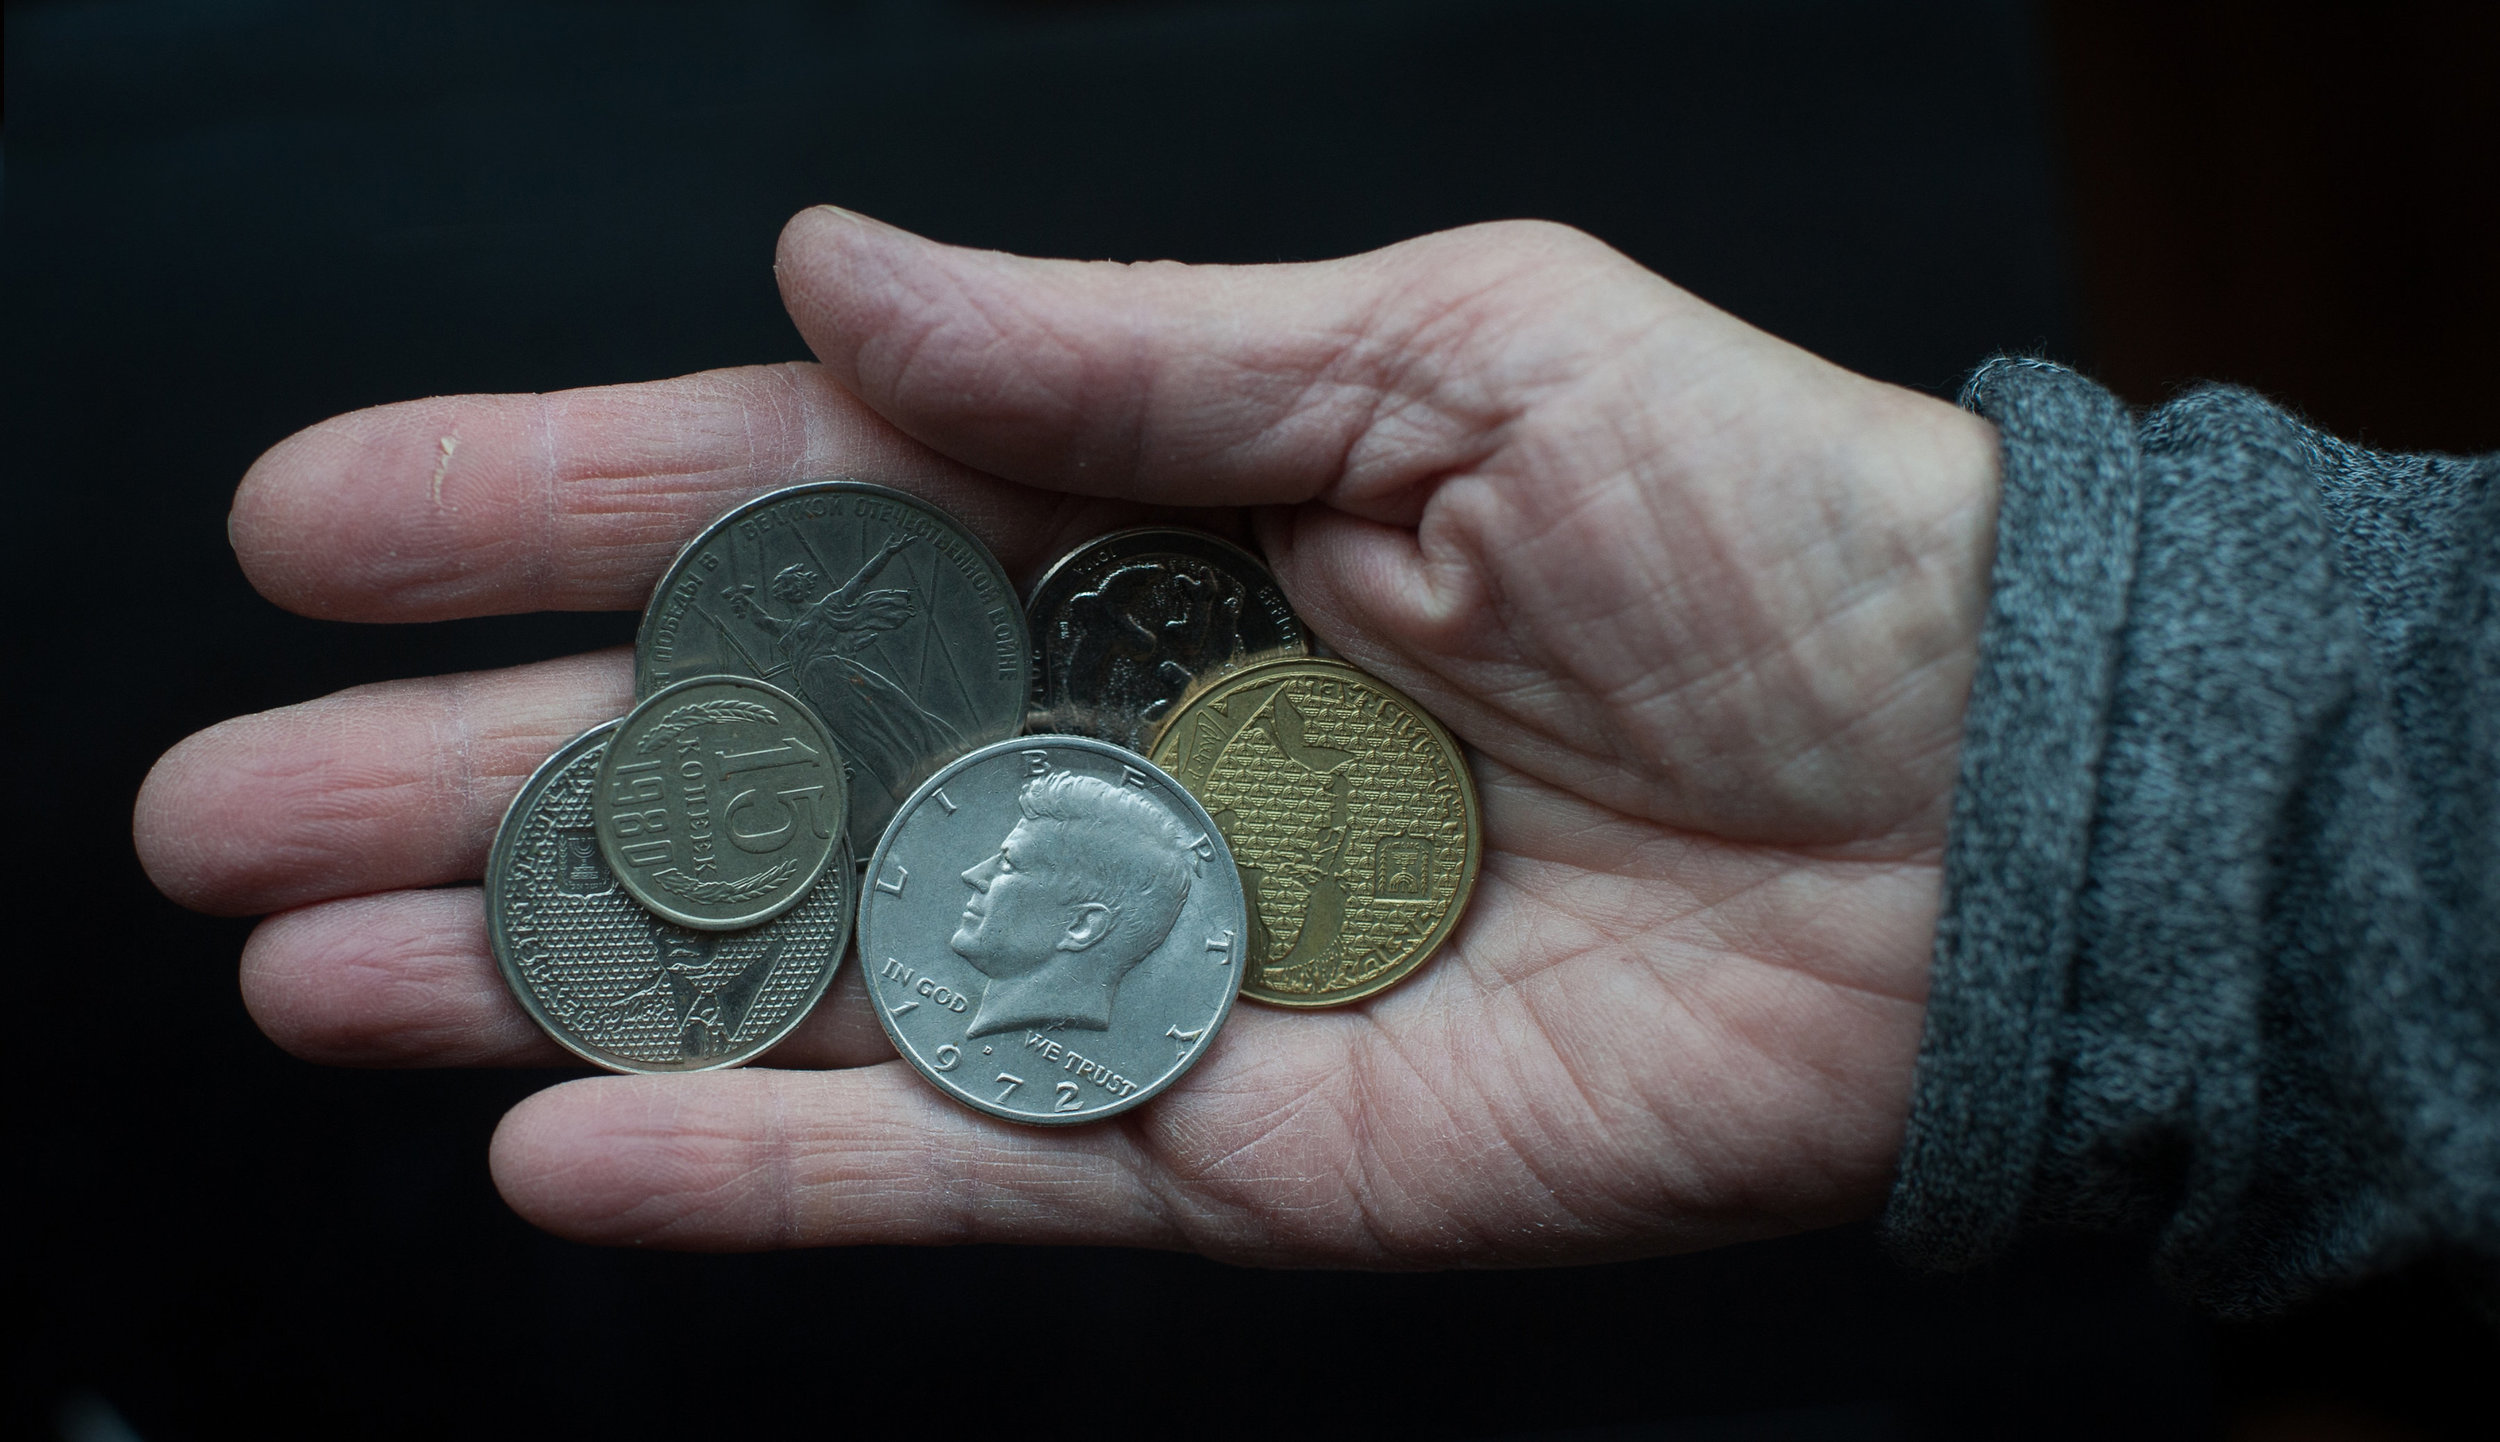 Phil's mother, Elena, holds coins worth well more than their face value to her, as they carry bits of her history. She came to the U.S. from Ukraine in 1981, when it was still part of the USSR. A Russian ruble dedicated to the 30th anniversary of victory in WWII reminds her that, as a baby-boomer, she's lived her life in the shadow of that war. She keeps a coin minted a year before her emigration to the U.S., a Kennedy half-dollar, and Israeli shekels left over from her trips to Israel.